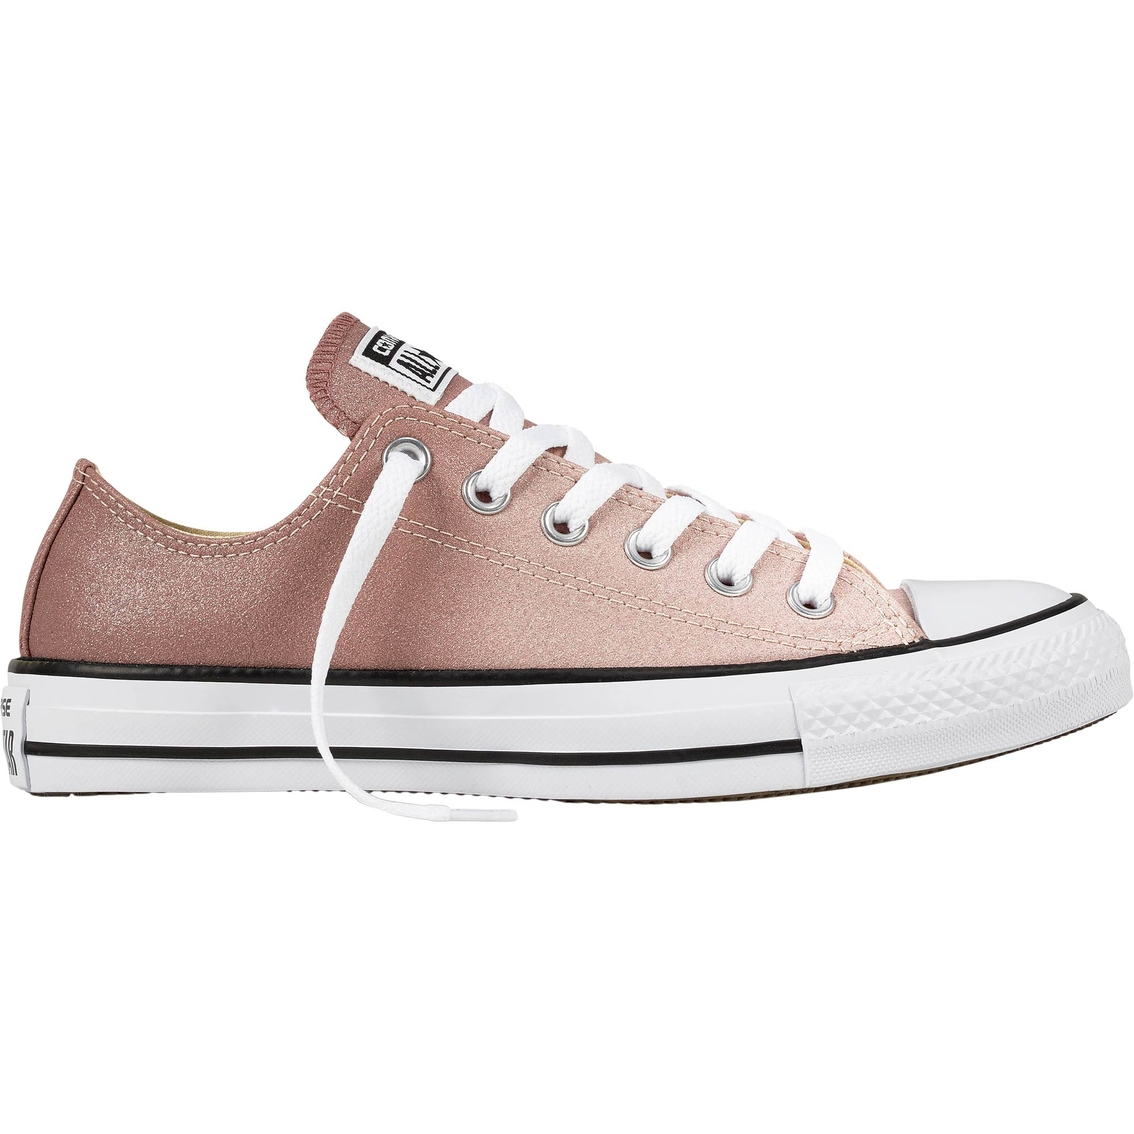 bc395984deb8 Converse Women s Chuck Taylor All Star Ox Ombre Particle Low Top Sneakers  Beige